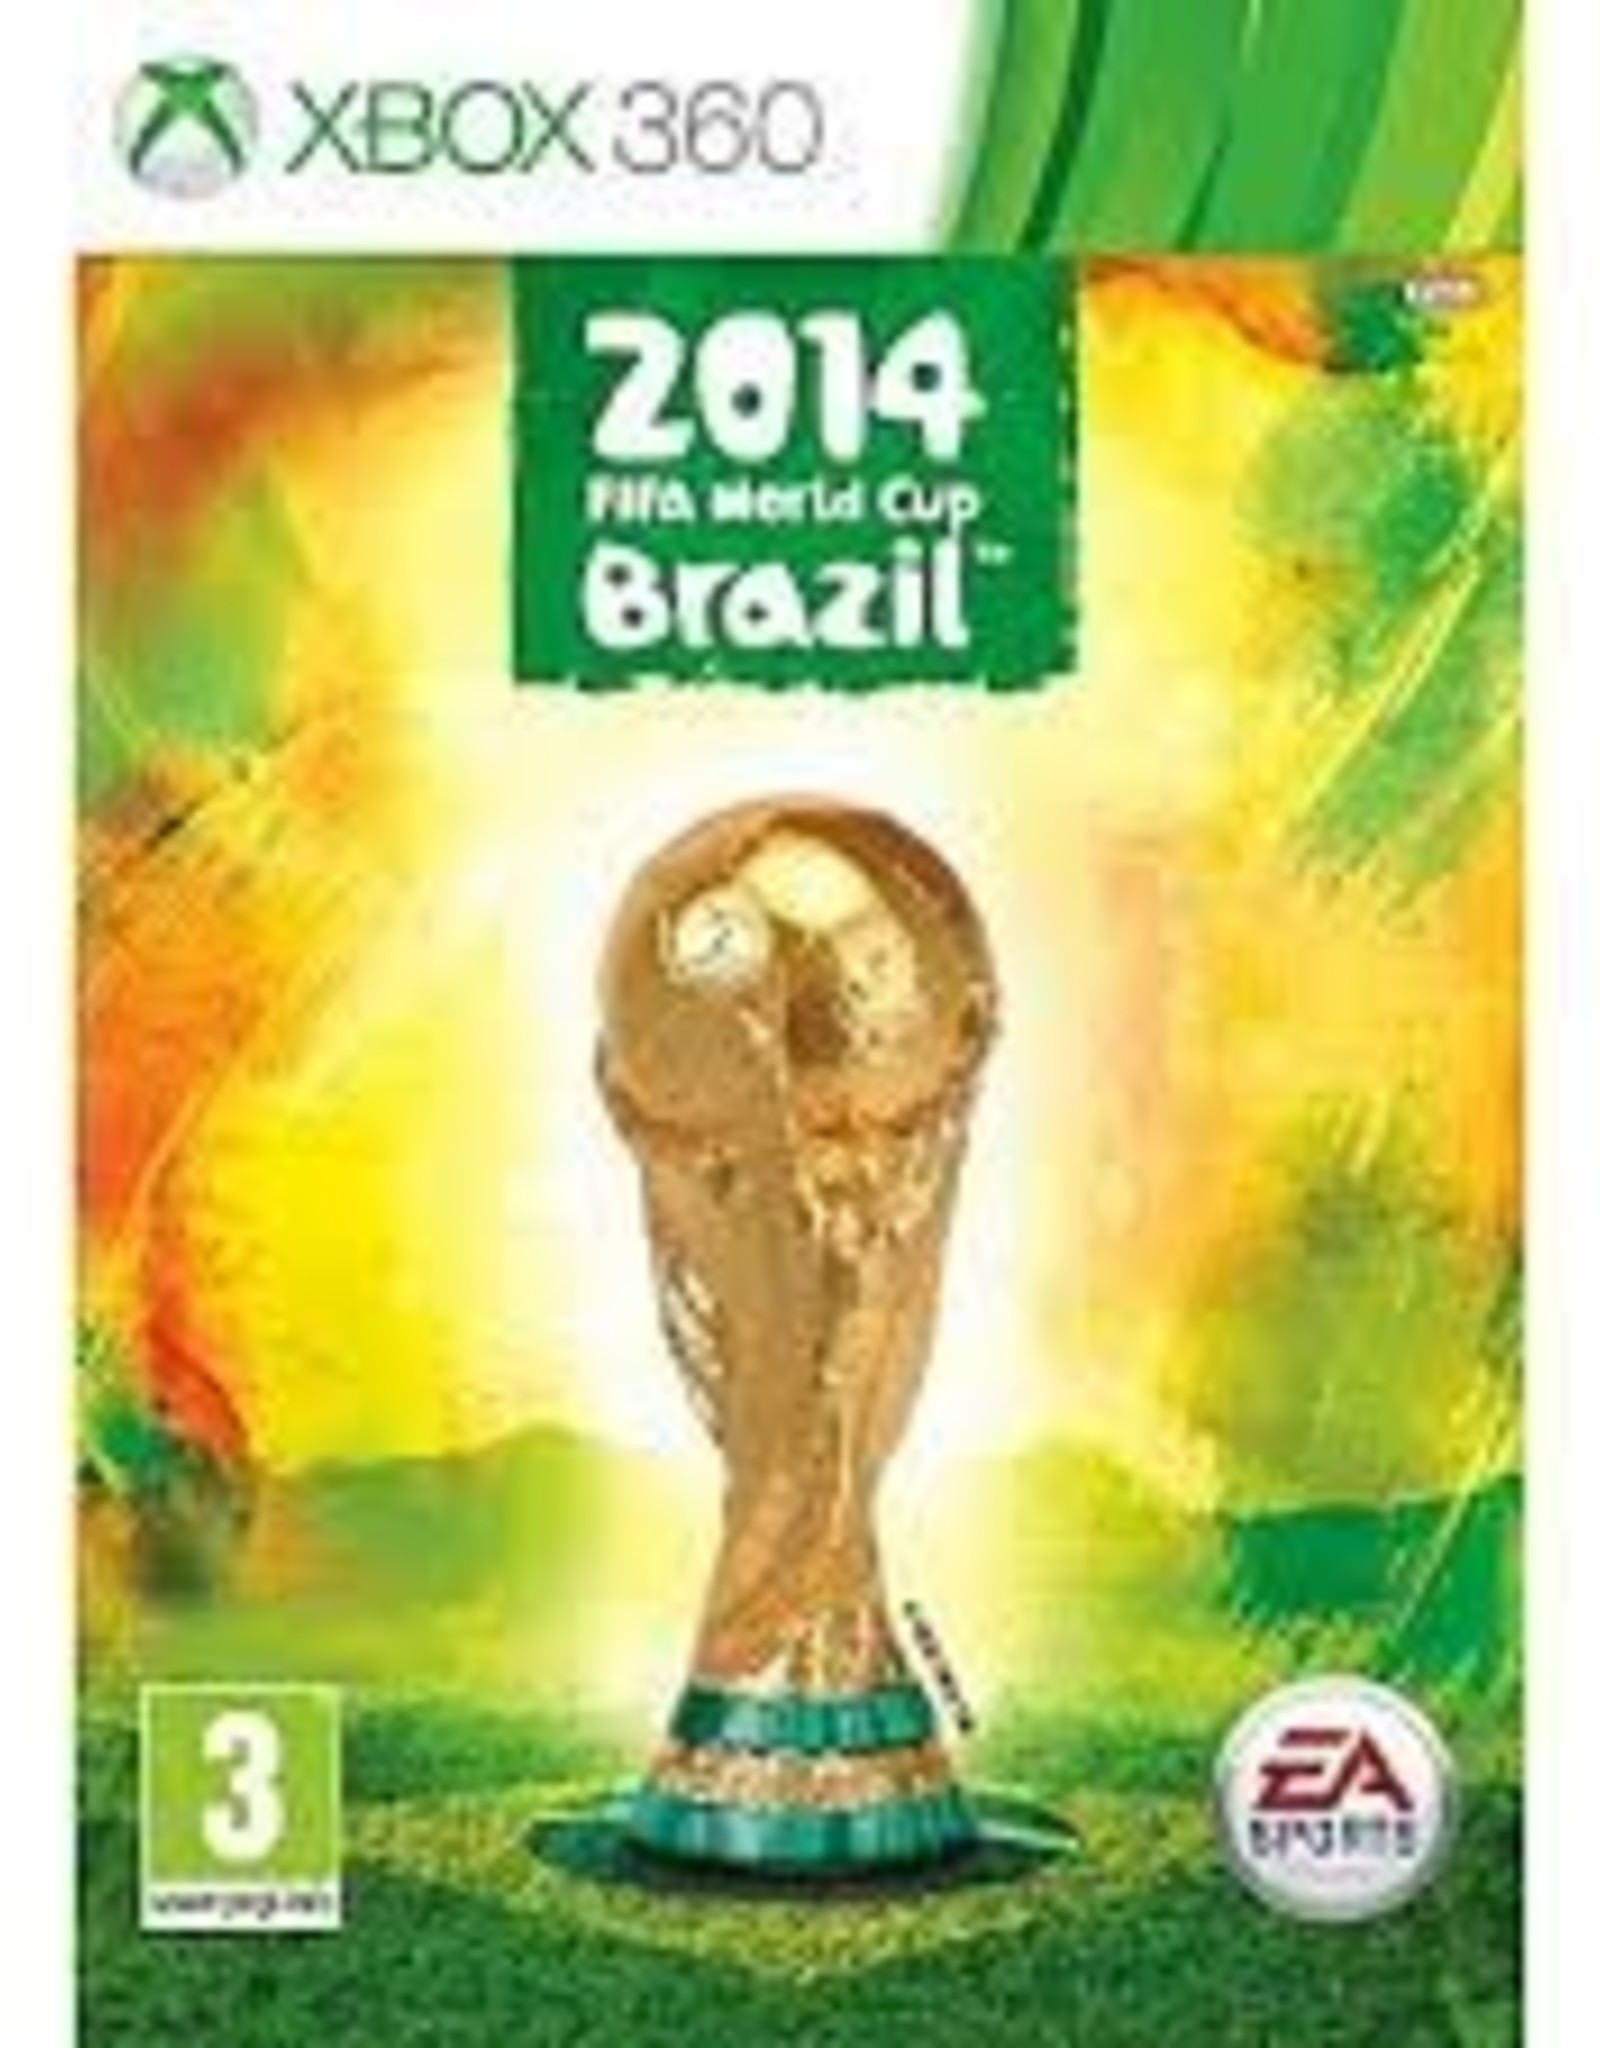 FIFA 2014 World Cup Brazil - XB360 PrePlayed